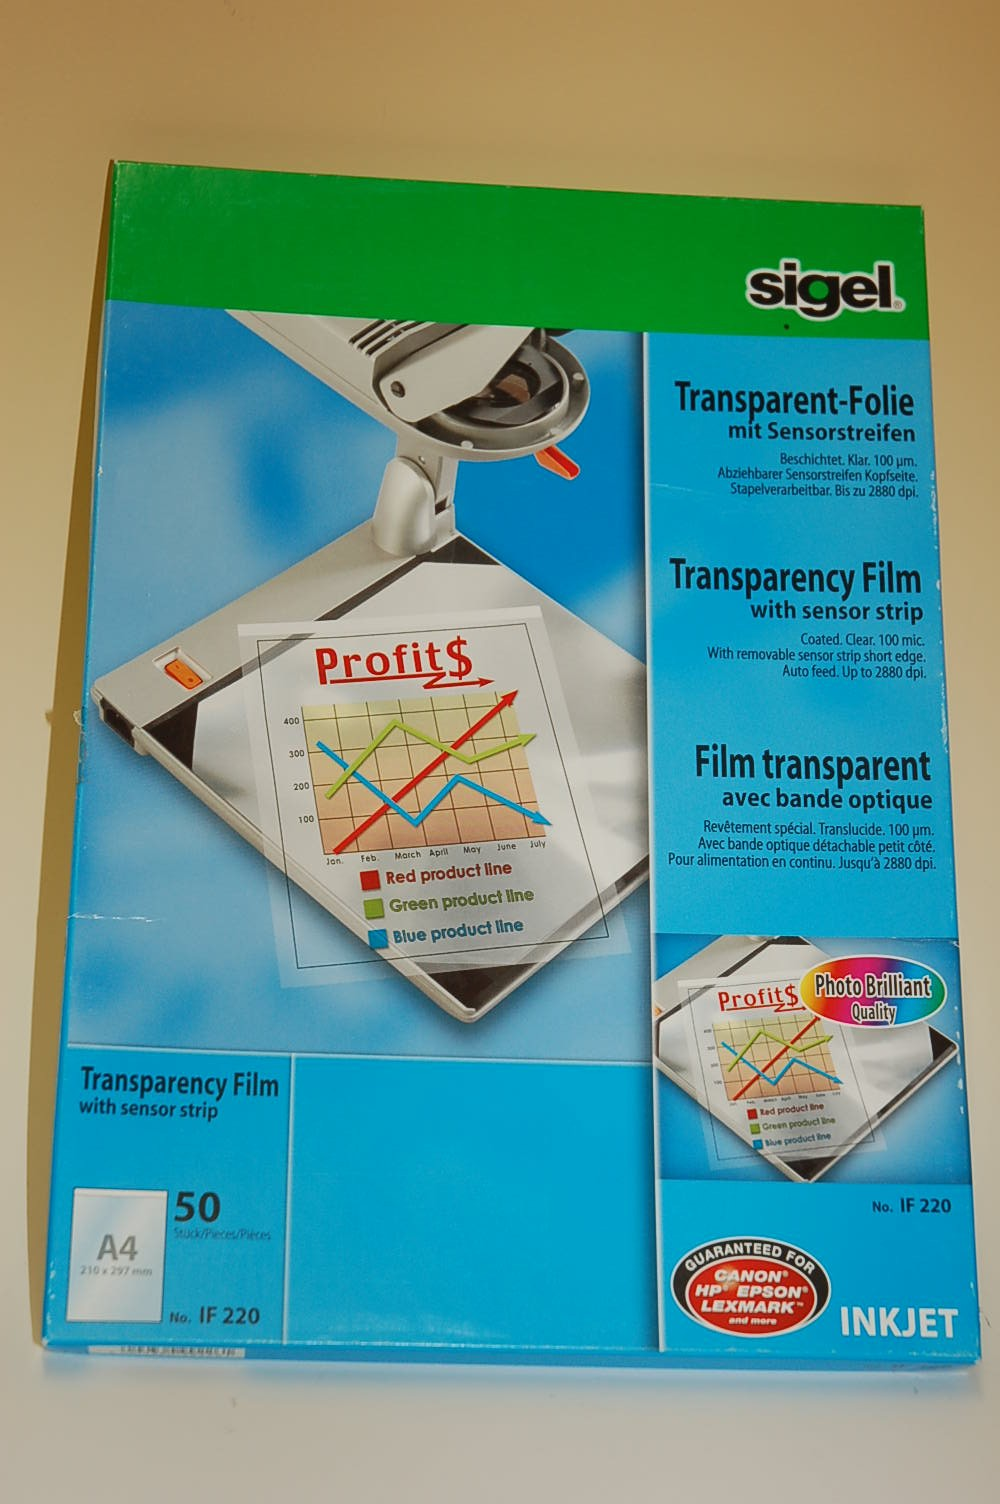 Sigel Transparent Folie A4 50 Blatt IF220